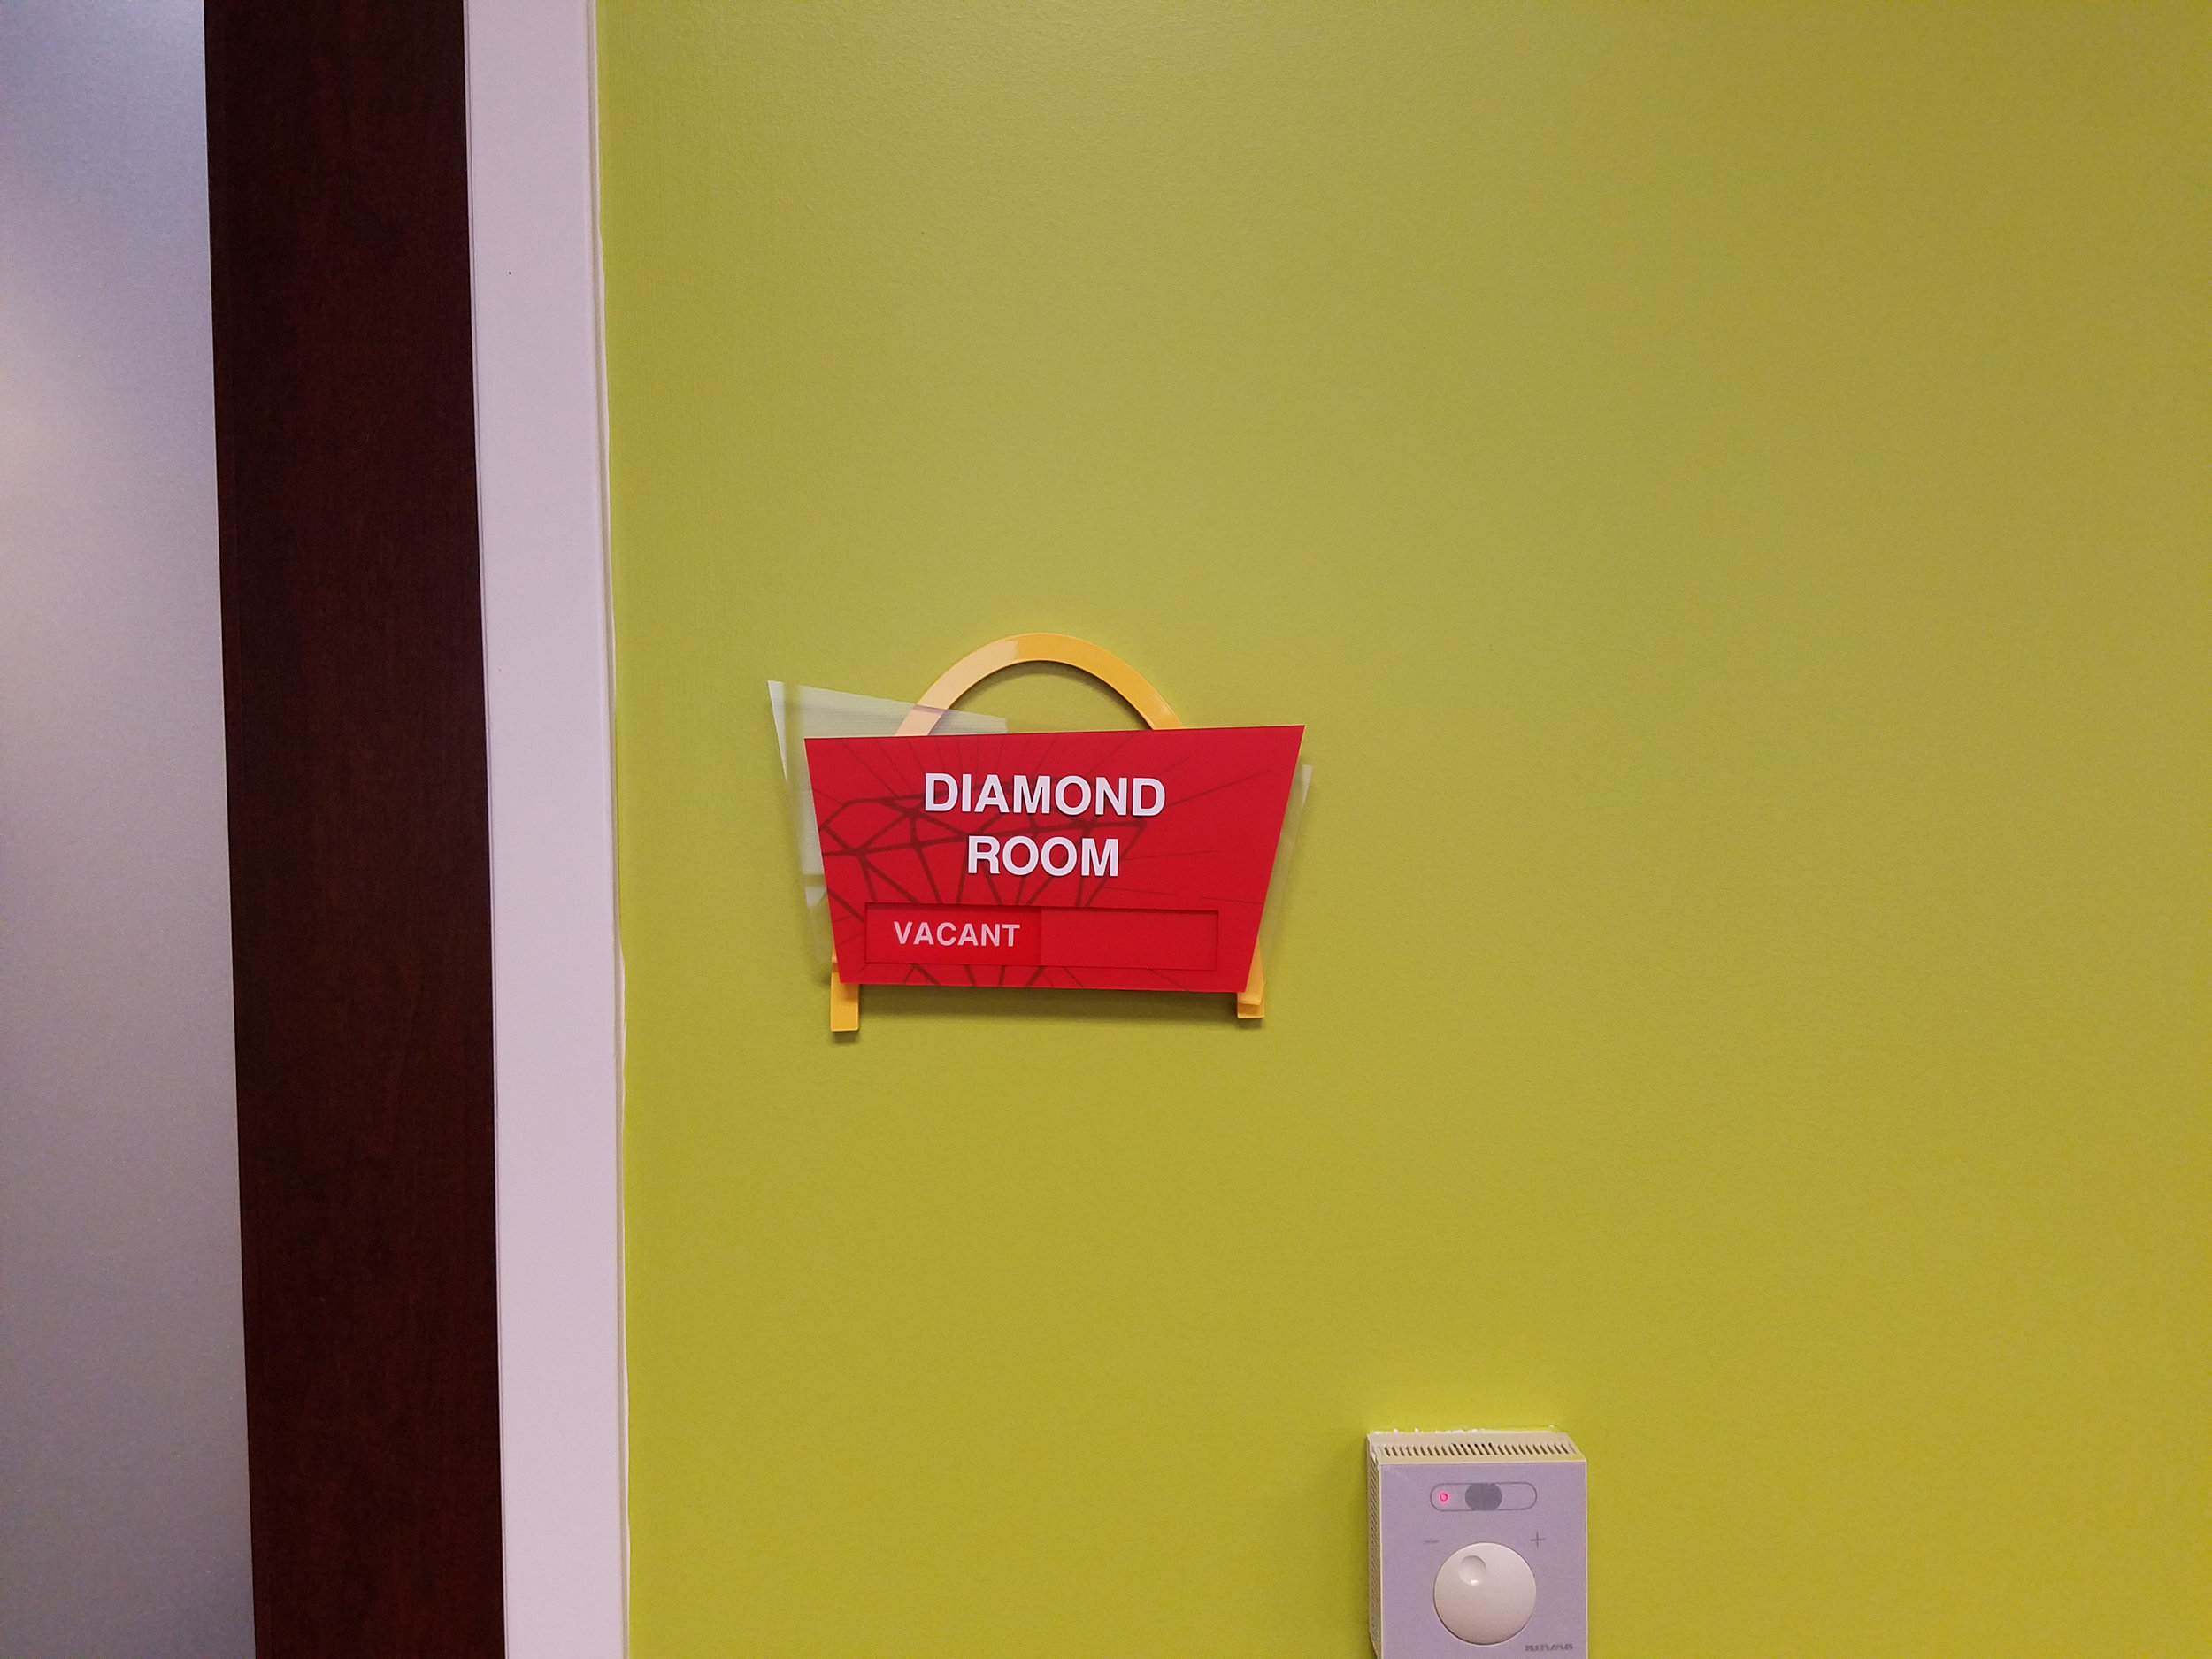 Copy of Ronald McDonald House Room Sign